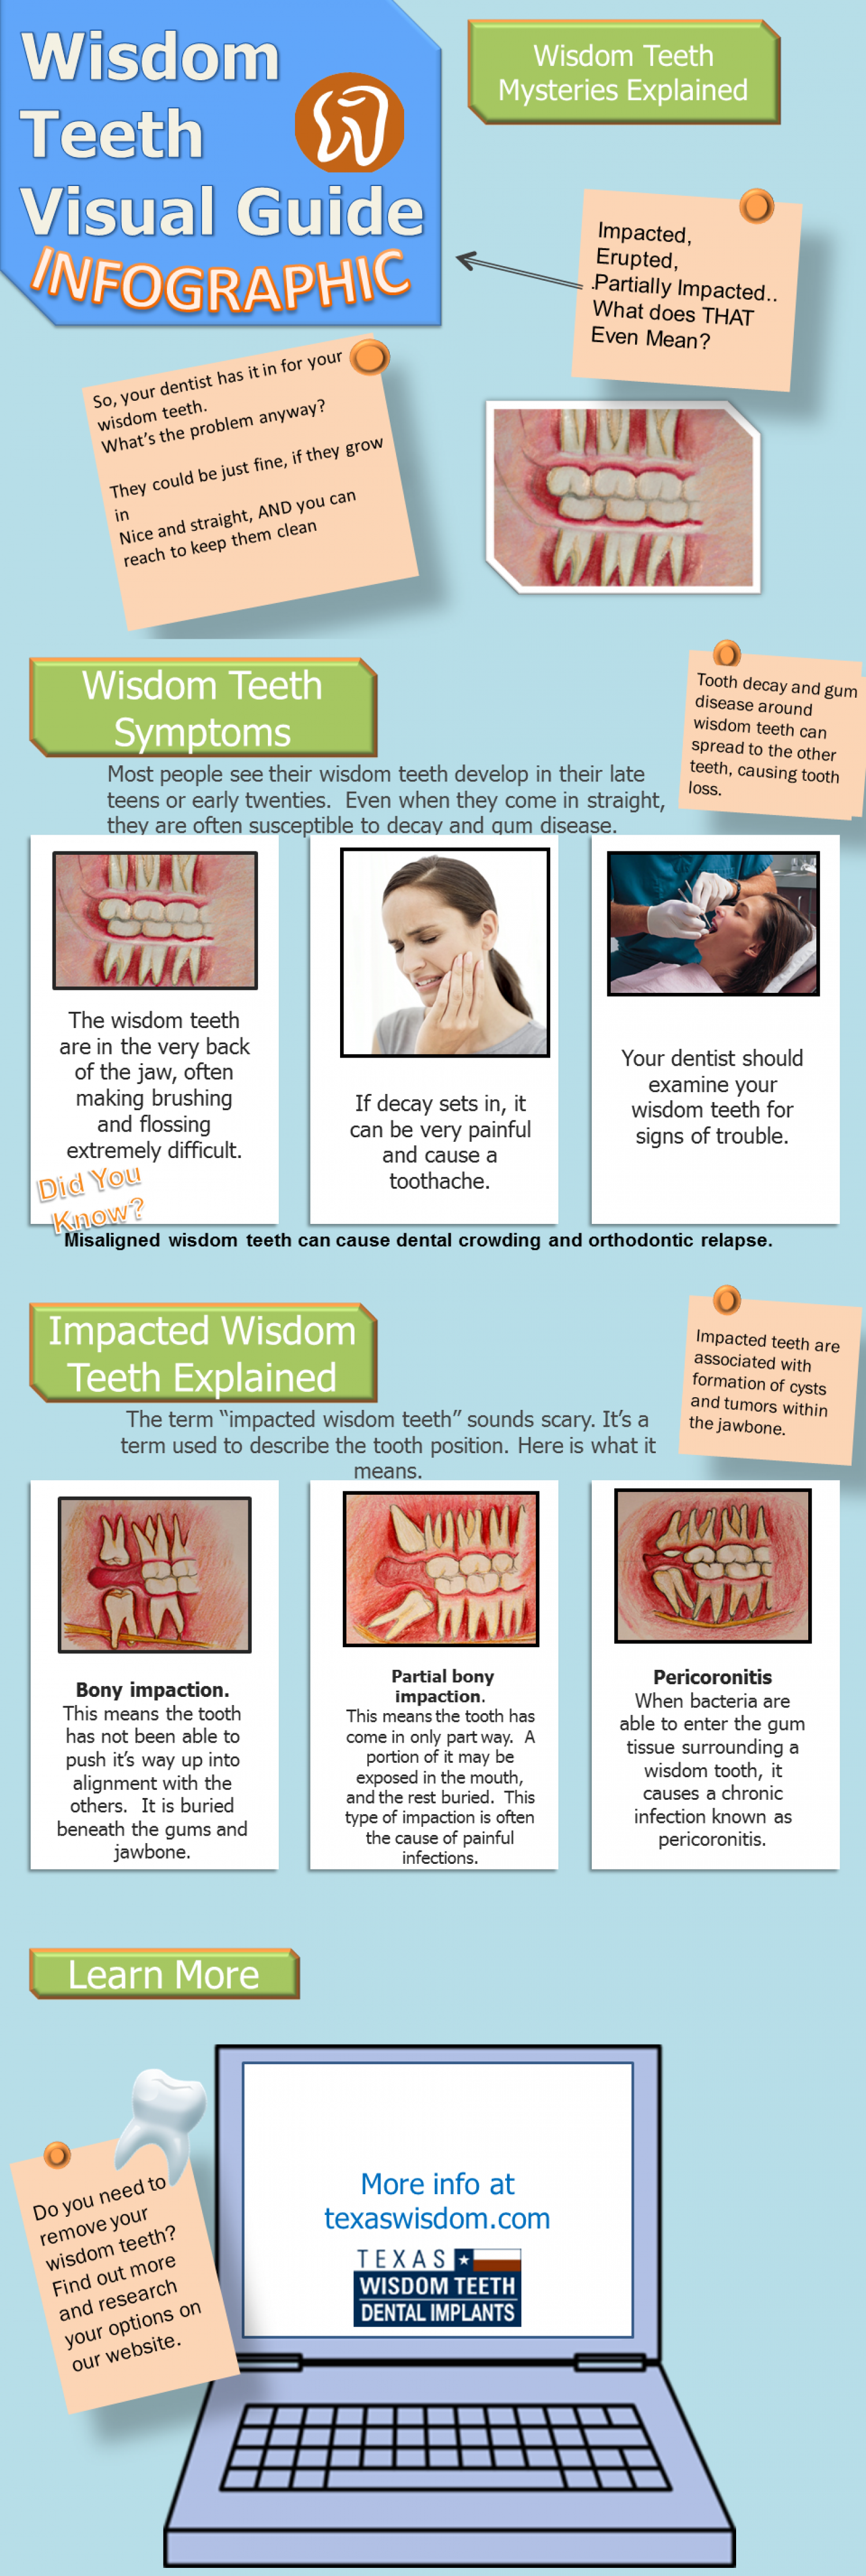 Wisdom Teeth Visual Guide Infographic